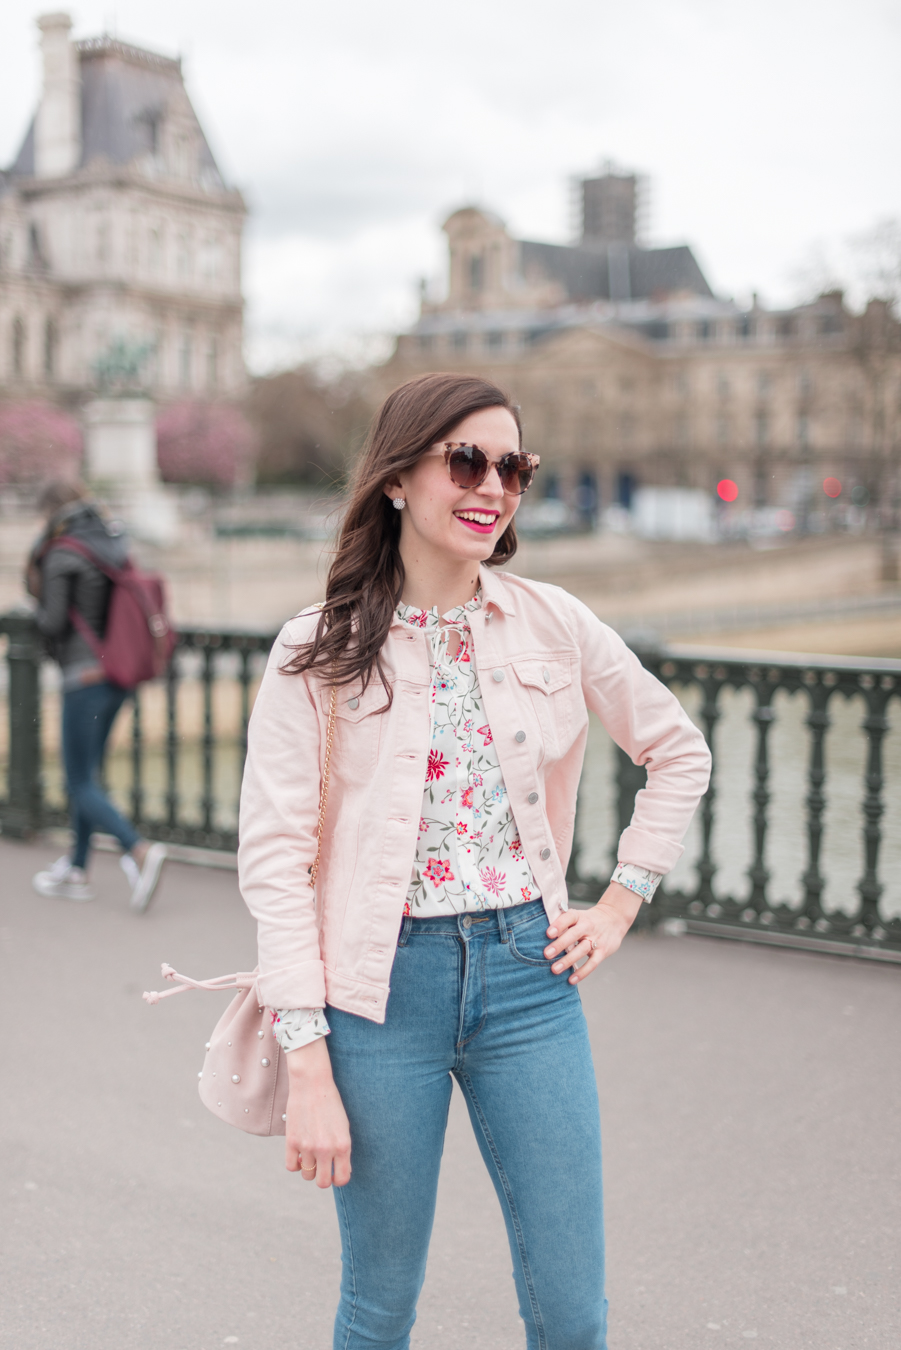 Blog-Mode-And-The-City-Looks-La-veste-en-jean-rose-parfaite-2